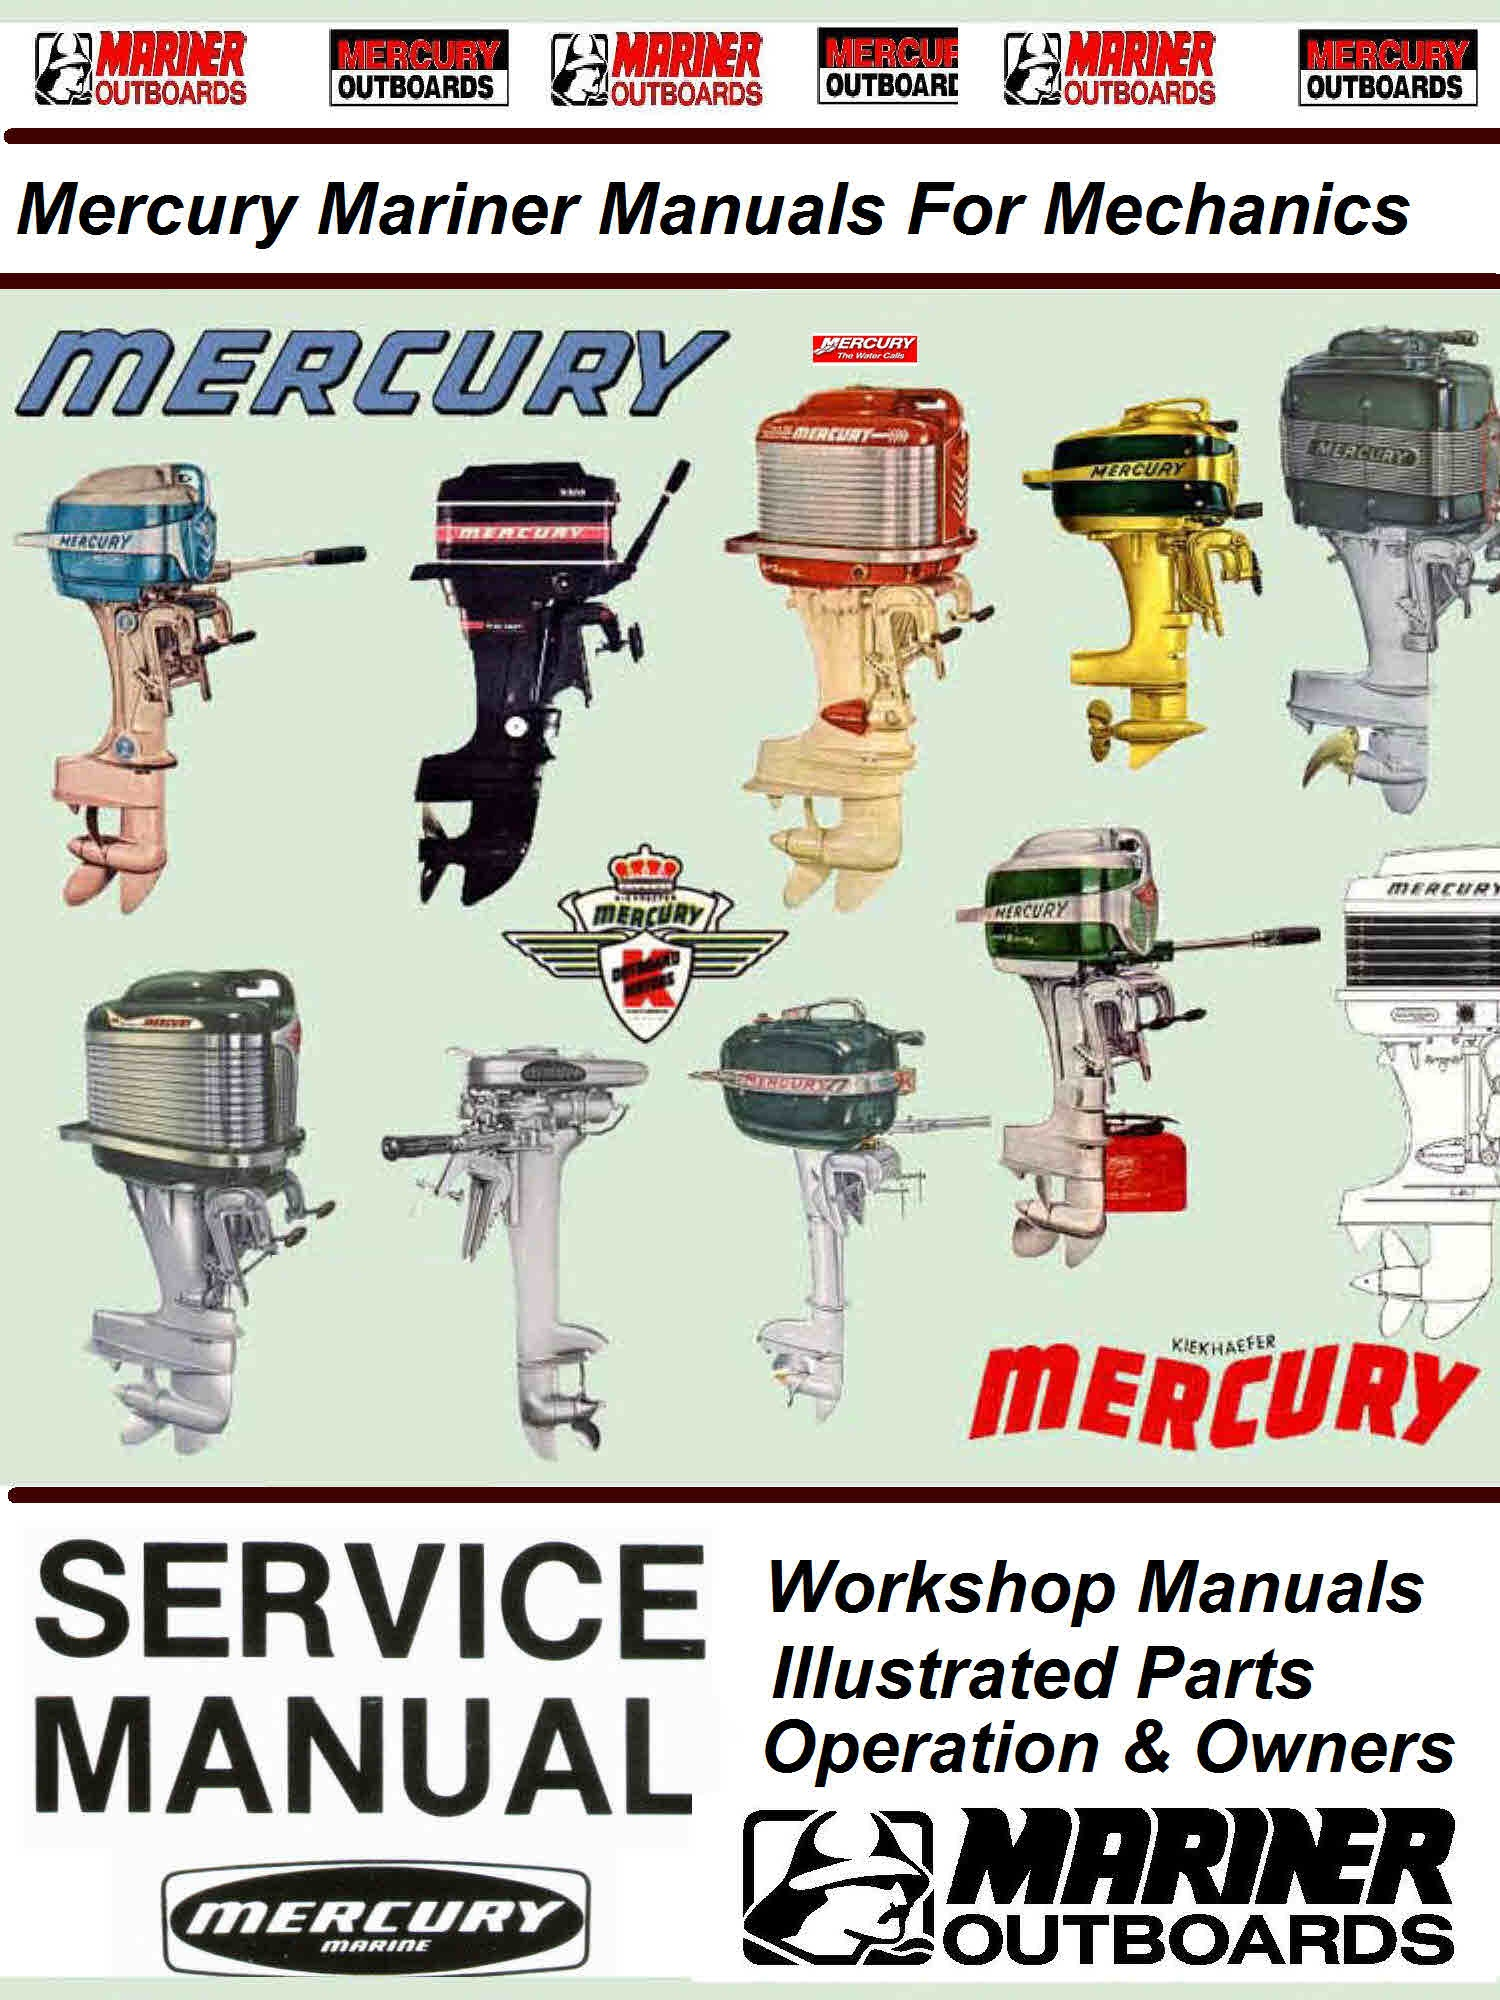 Mercury & Mariner Vintage Service Manuals for MechanicsLarge collection of  Mercury Mariner Workshop Service ManualsIllustrated parts Manuals &  Operator ...